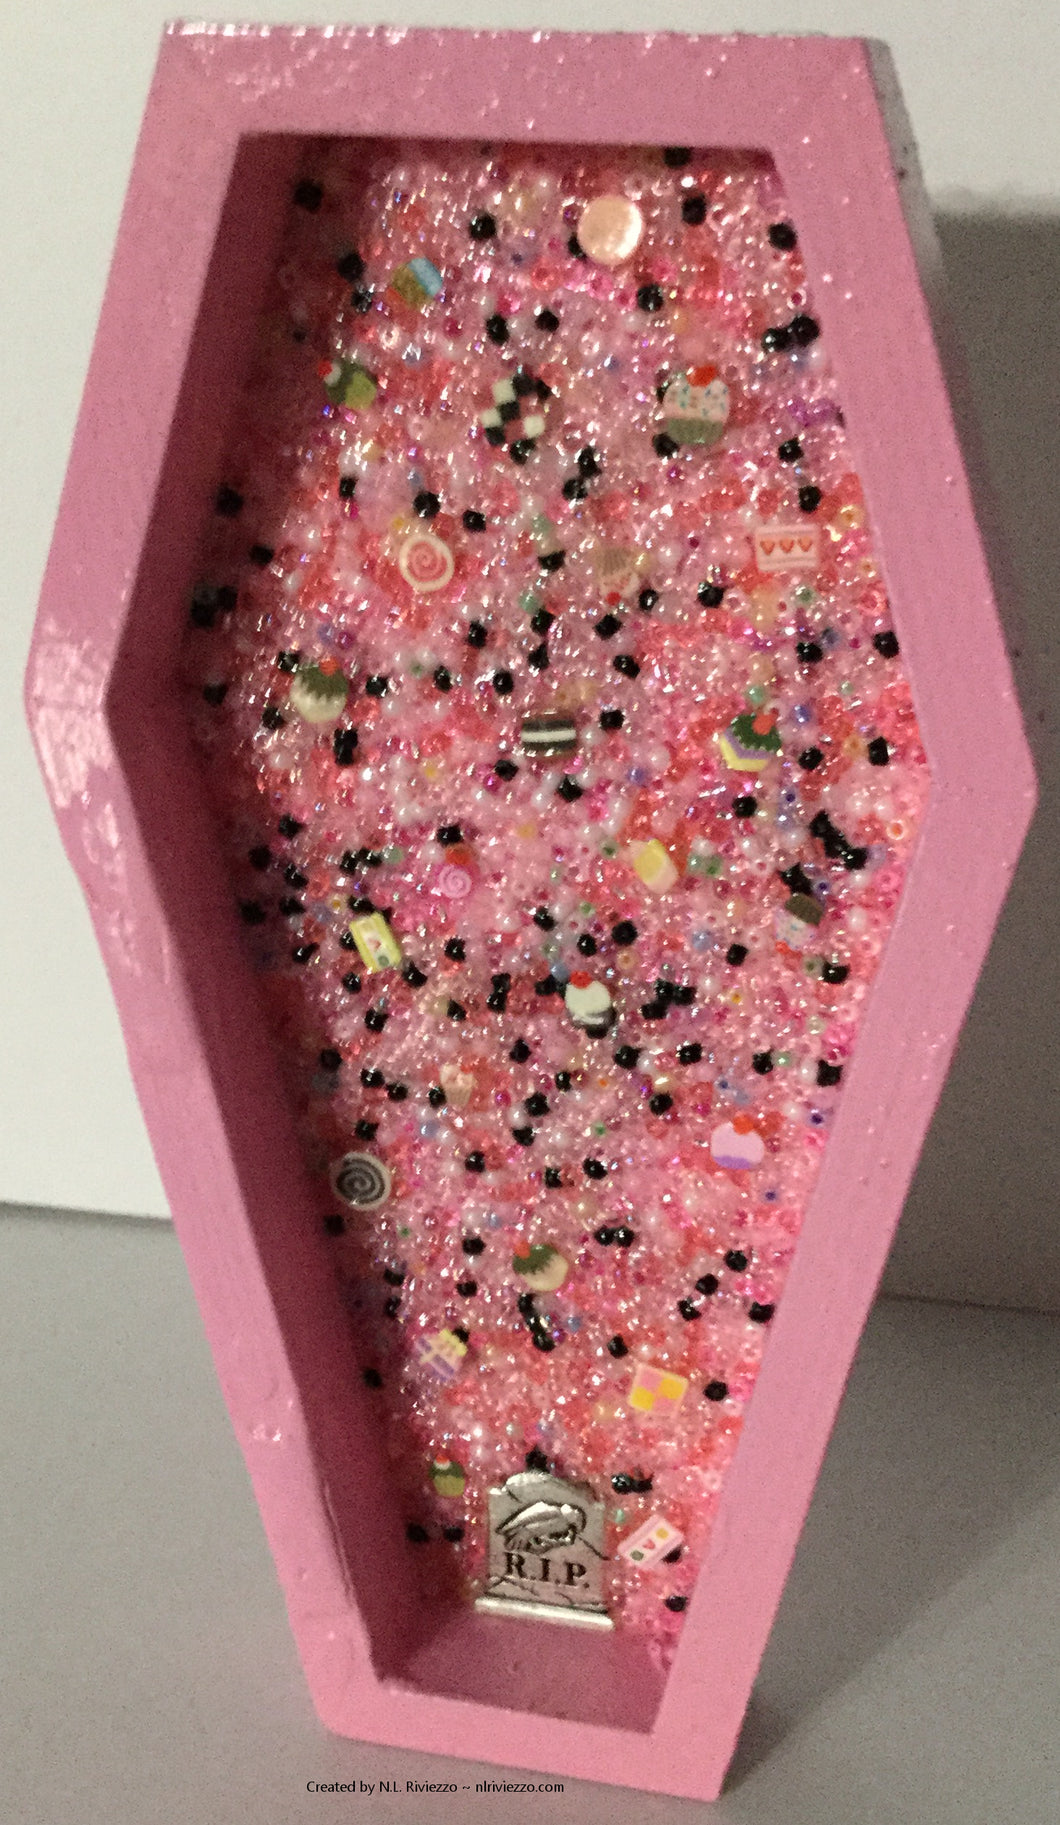 Bead Mosaic - Cake or Death